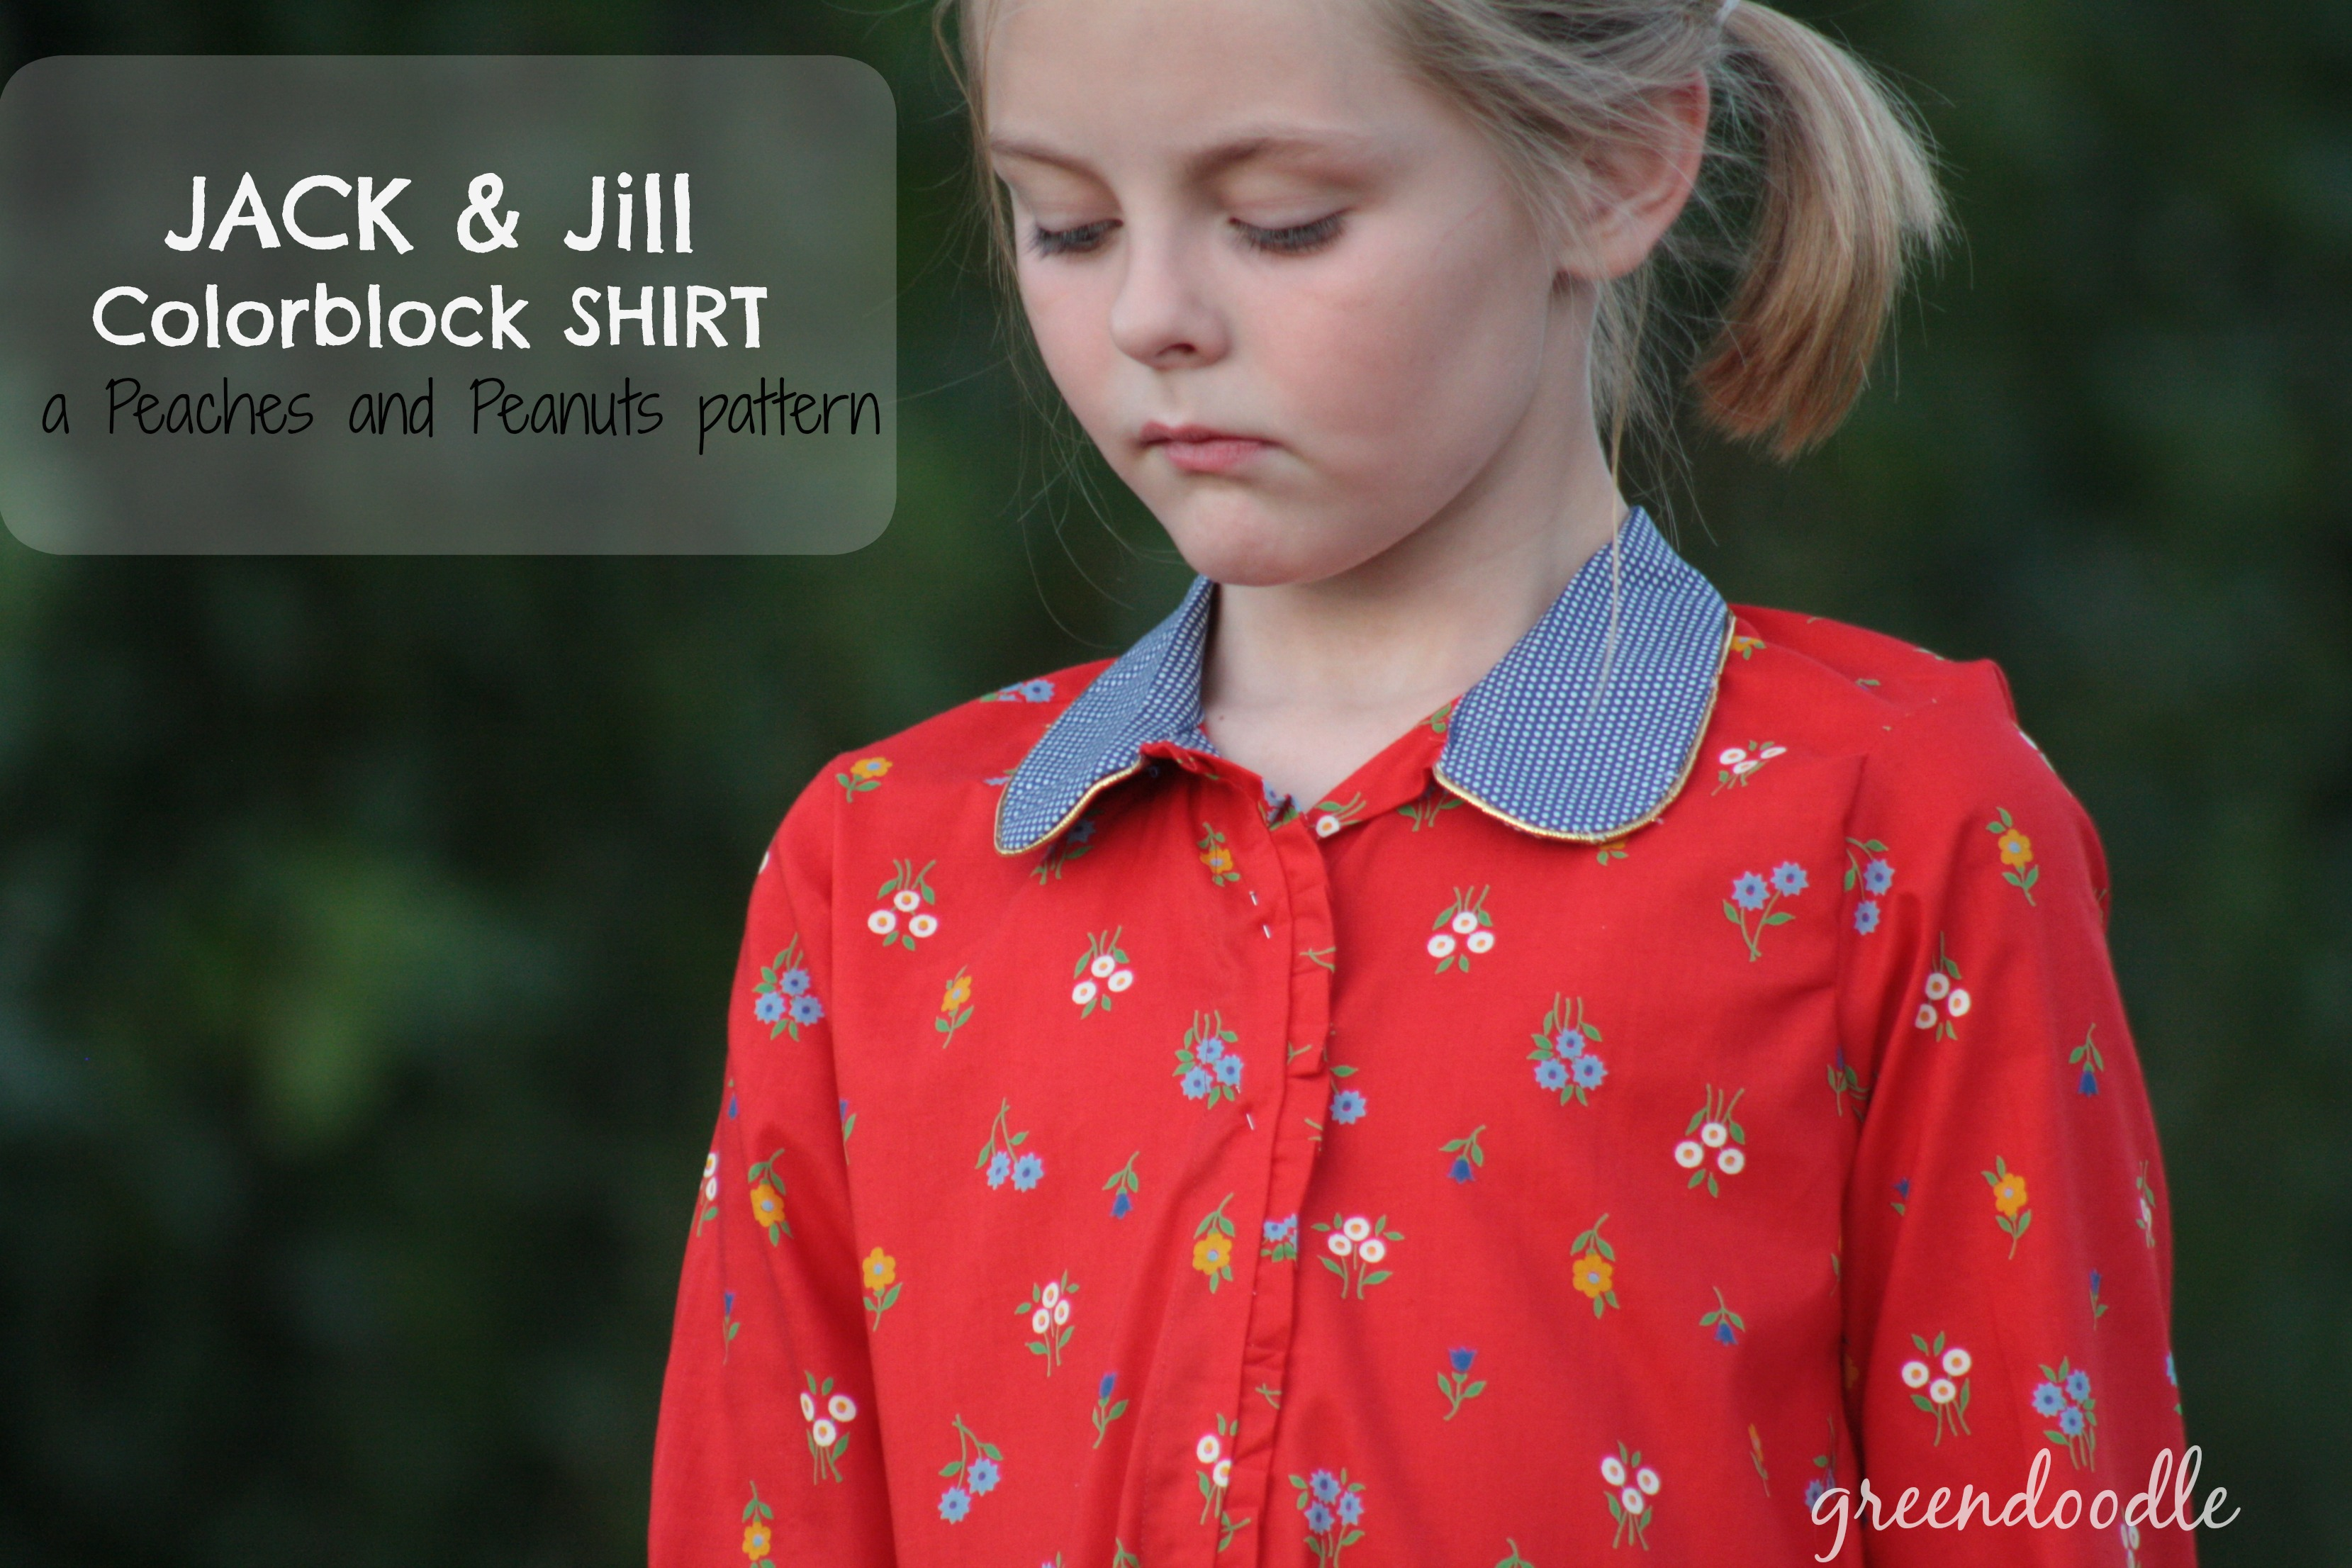 Peaches and Peanuts, Jack & Jill Shirt {sewn by: greendoodle}